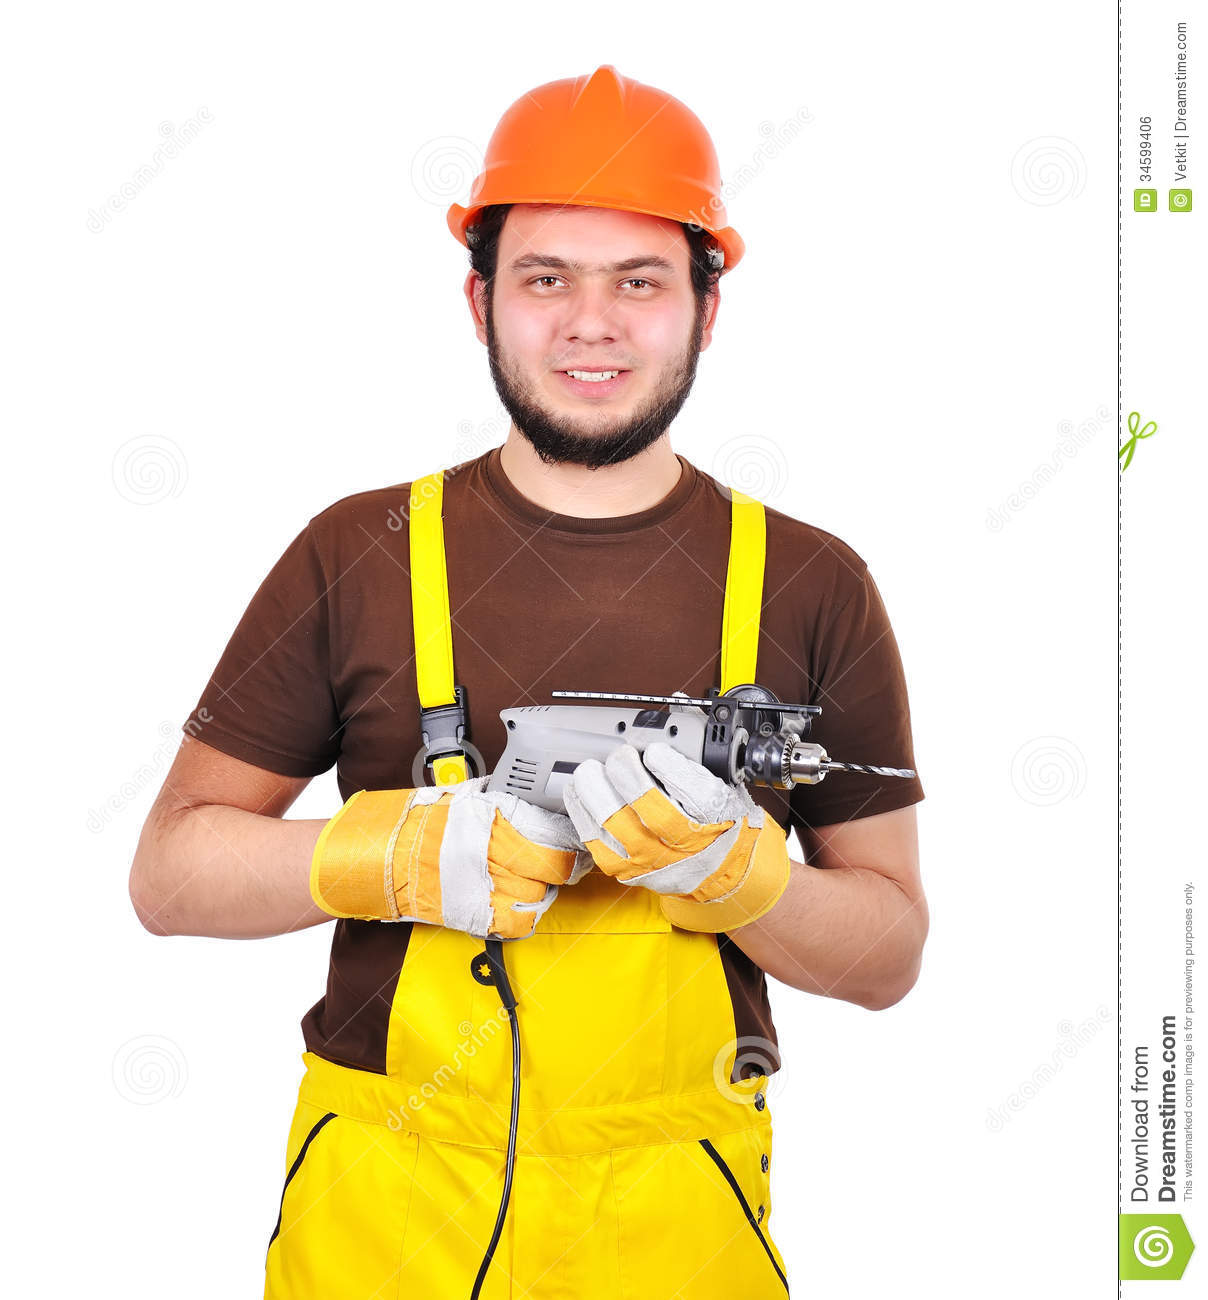 Builder with drill royalty free stock image image 34599406 Www builder